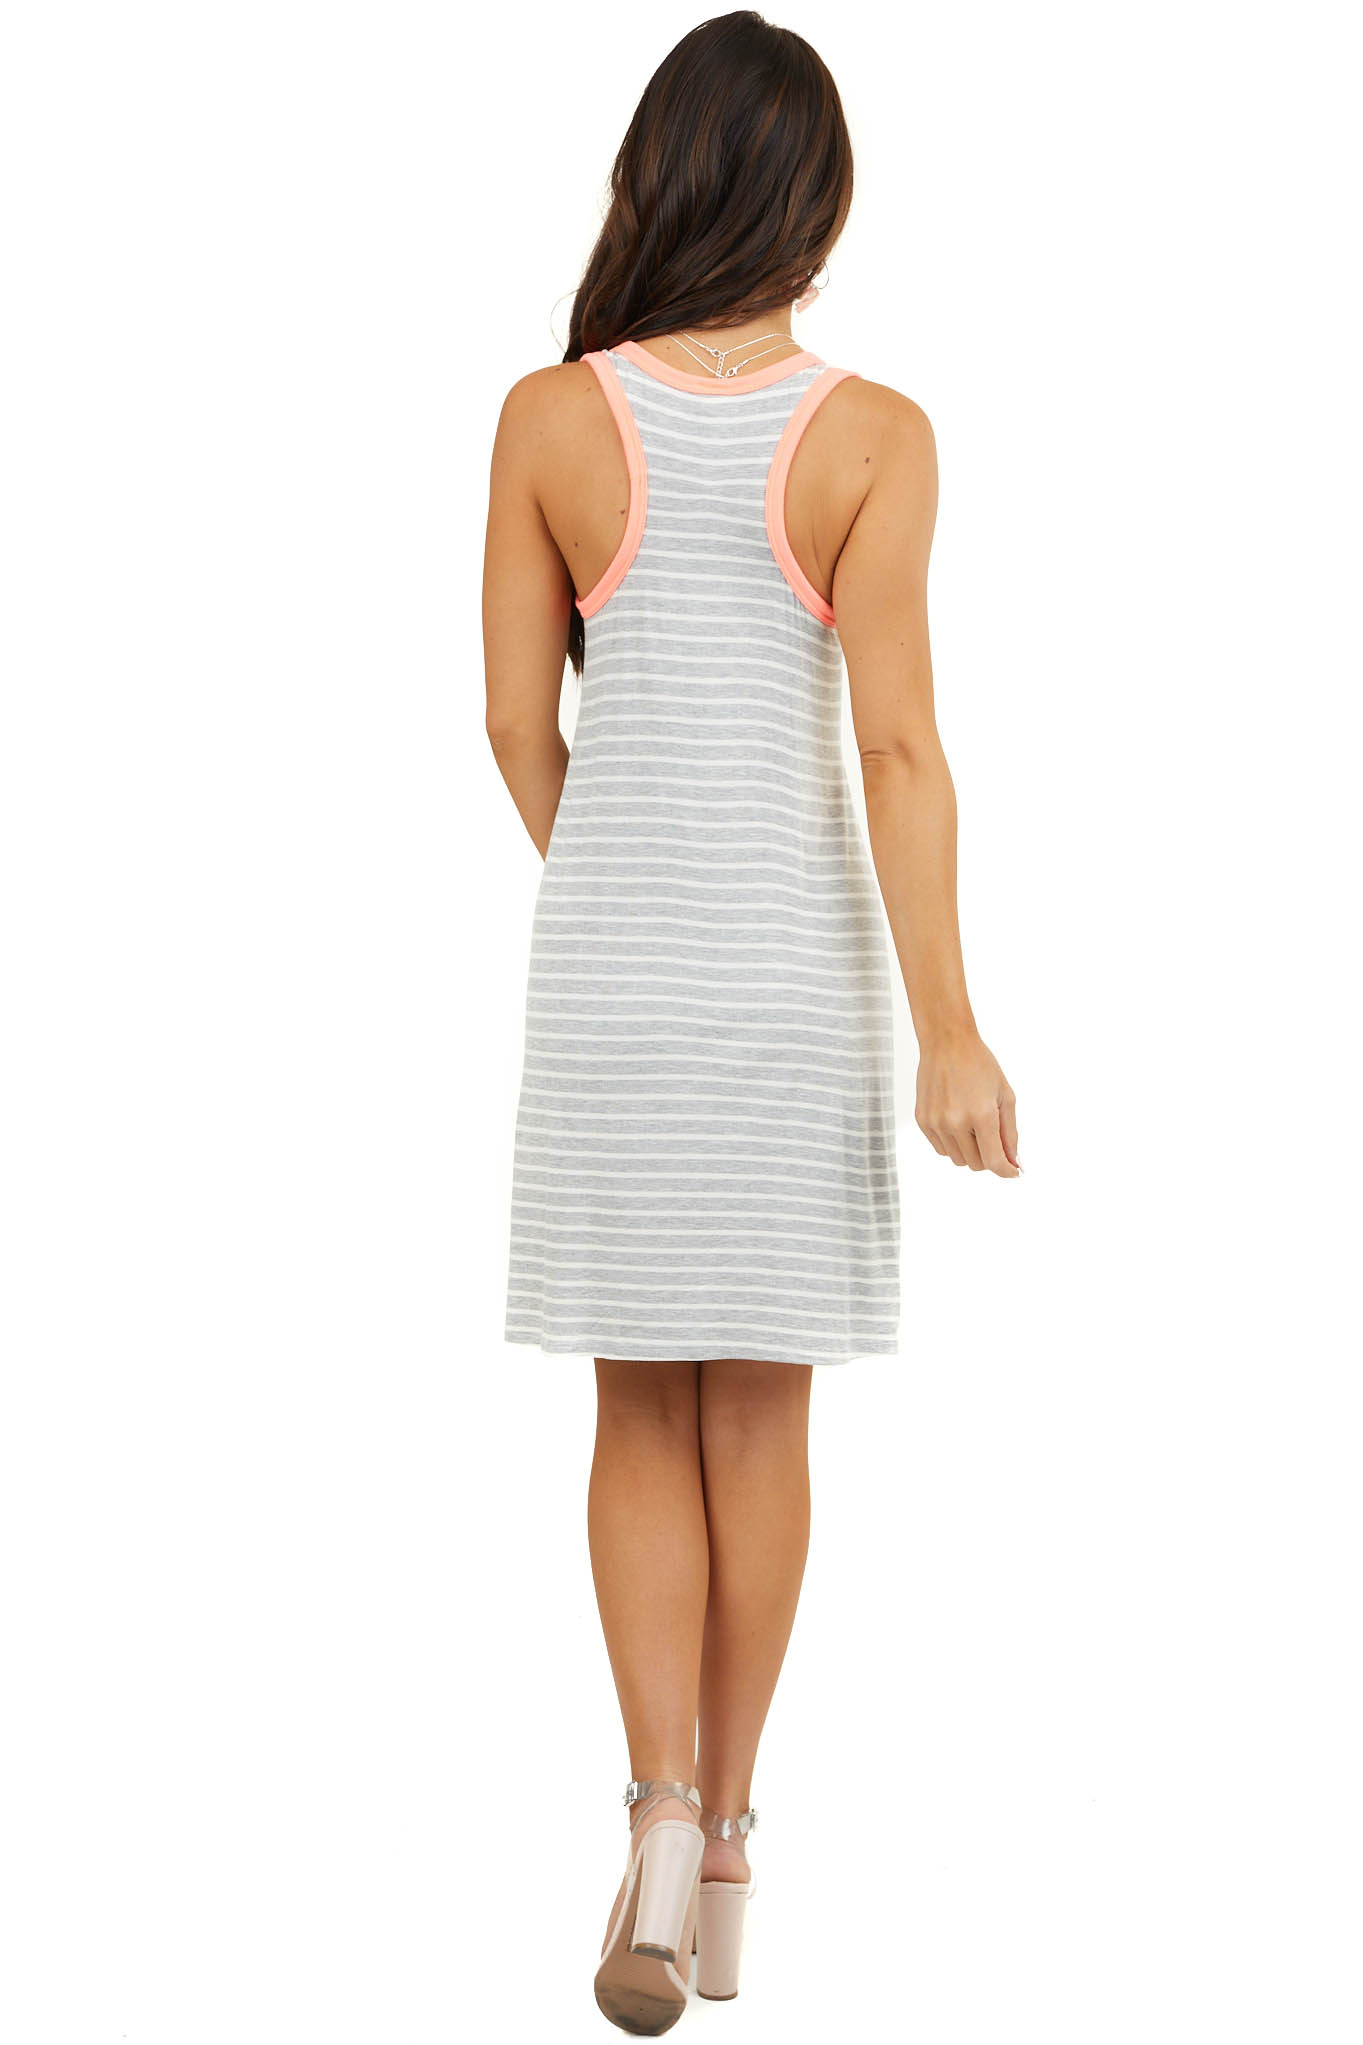 Grey and White Striped Racerback Dress with Leopard Pocket